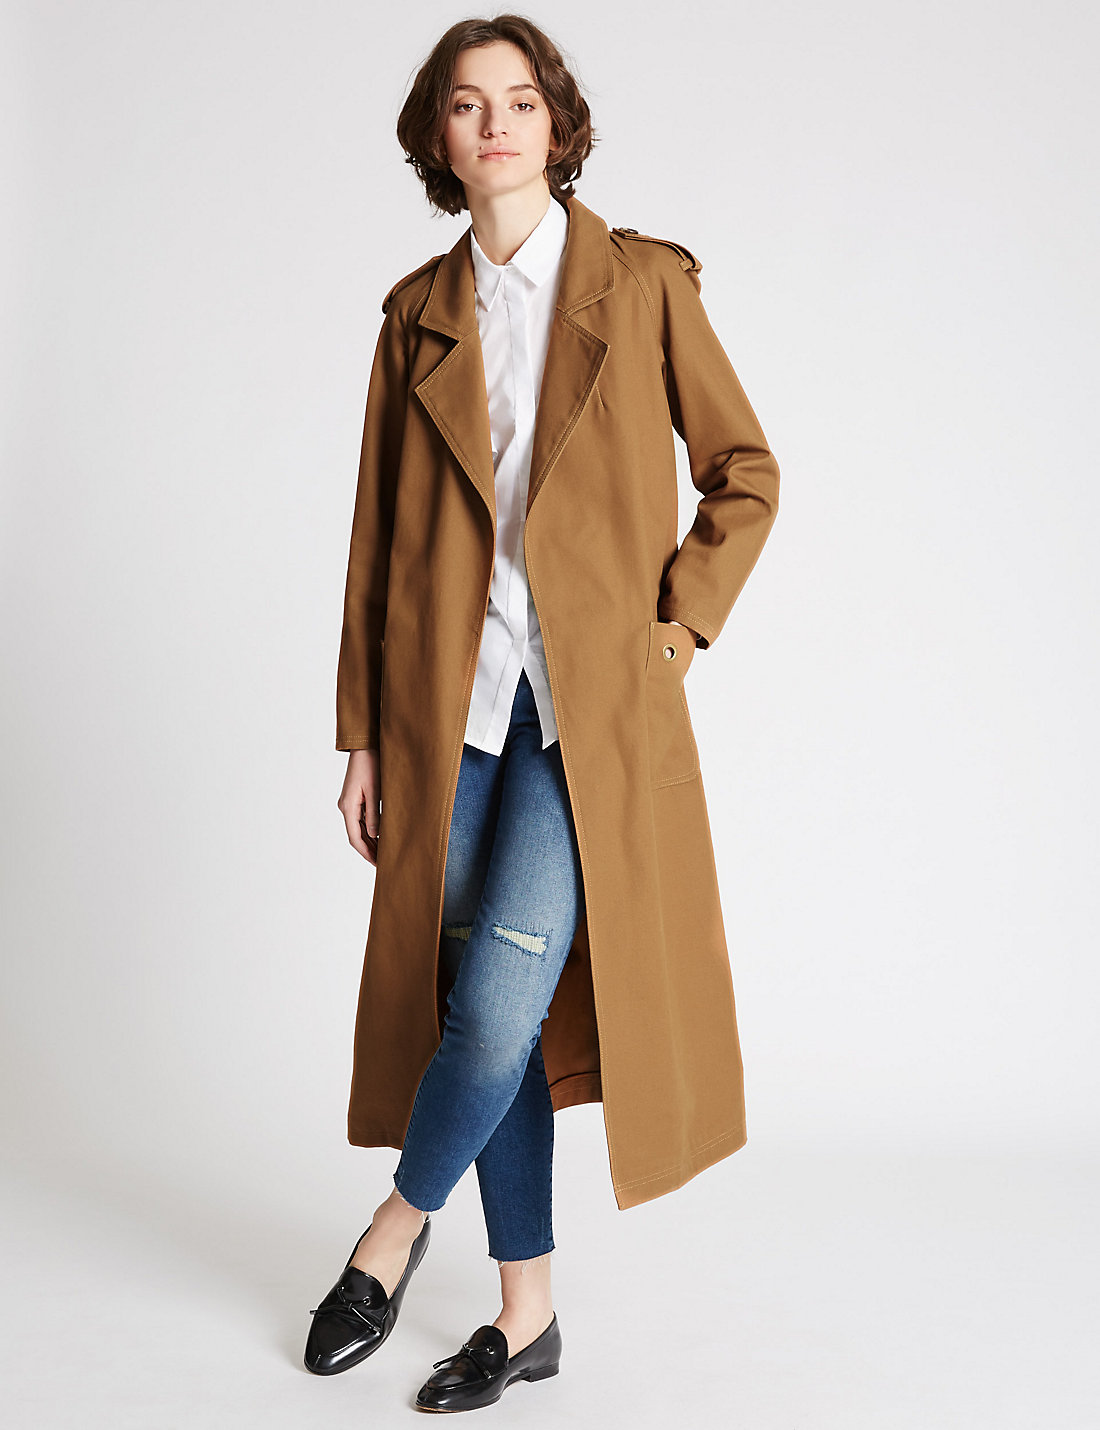 M&S Cotton Trench